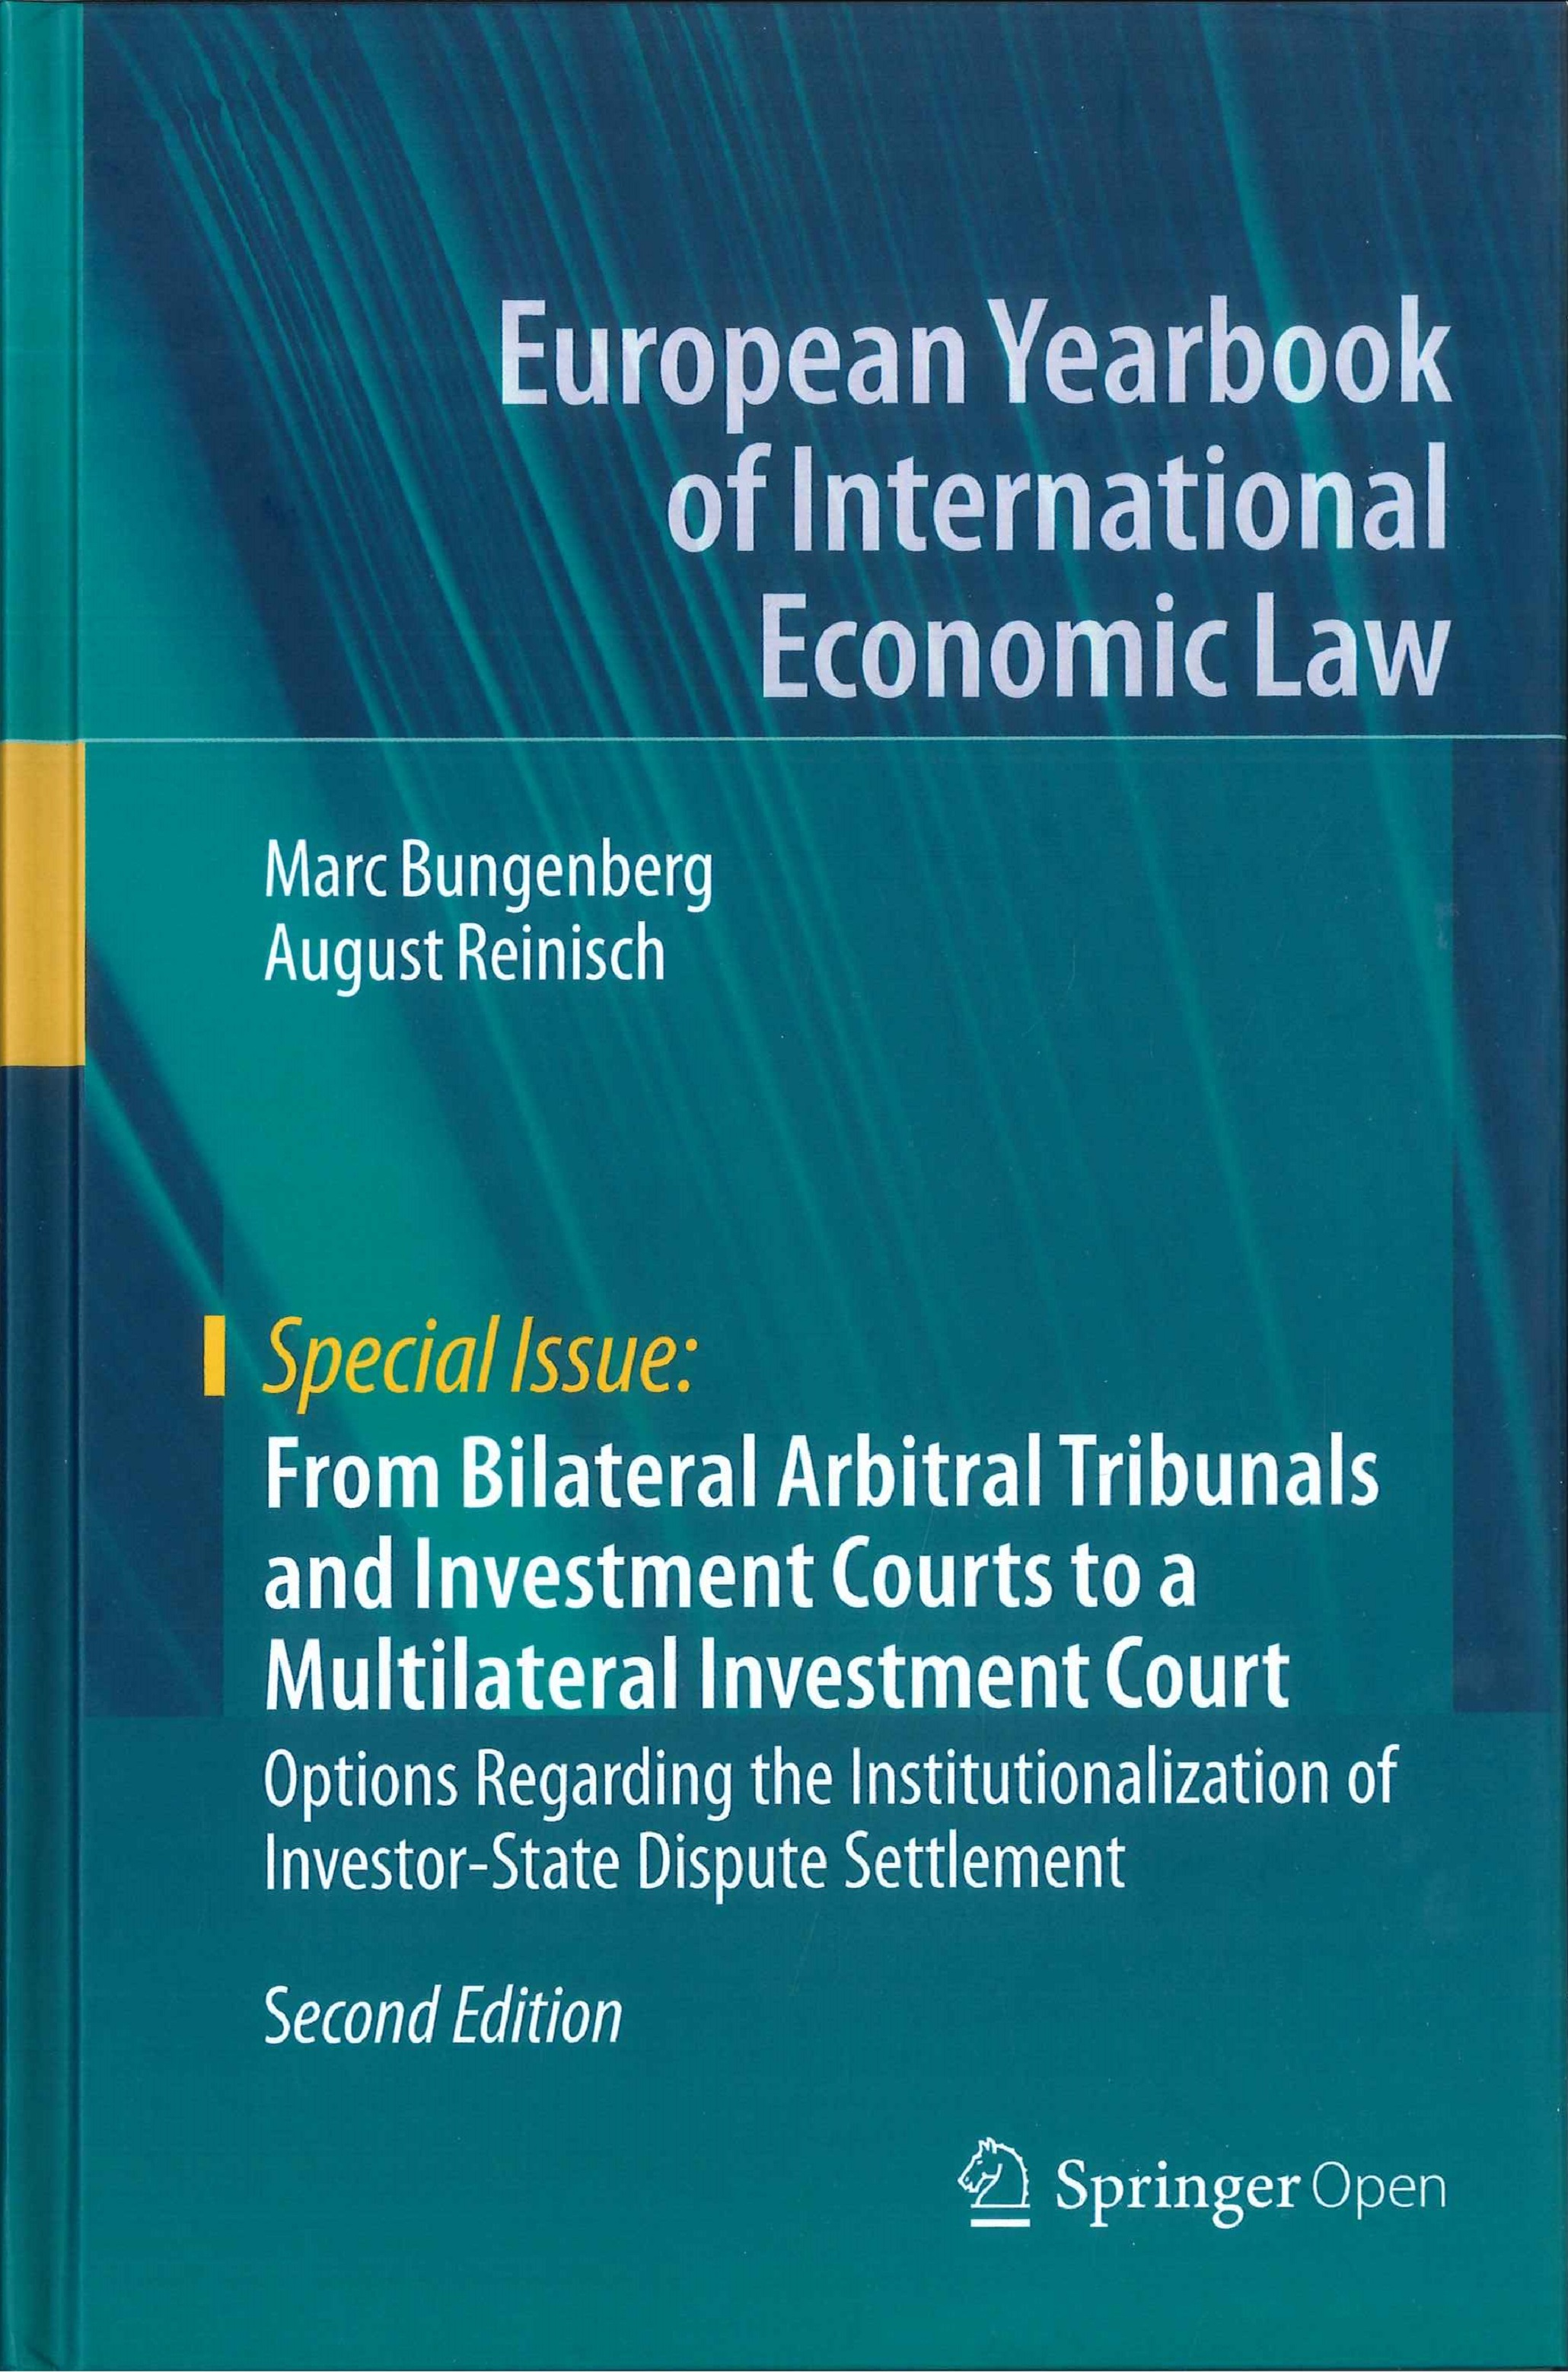 From bilateral arbitral tribunals and investment courts to a multilateral investment court:options regarding the institutionalization of investor-state dispute settlement